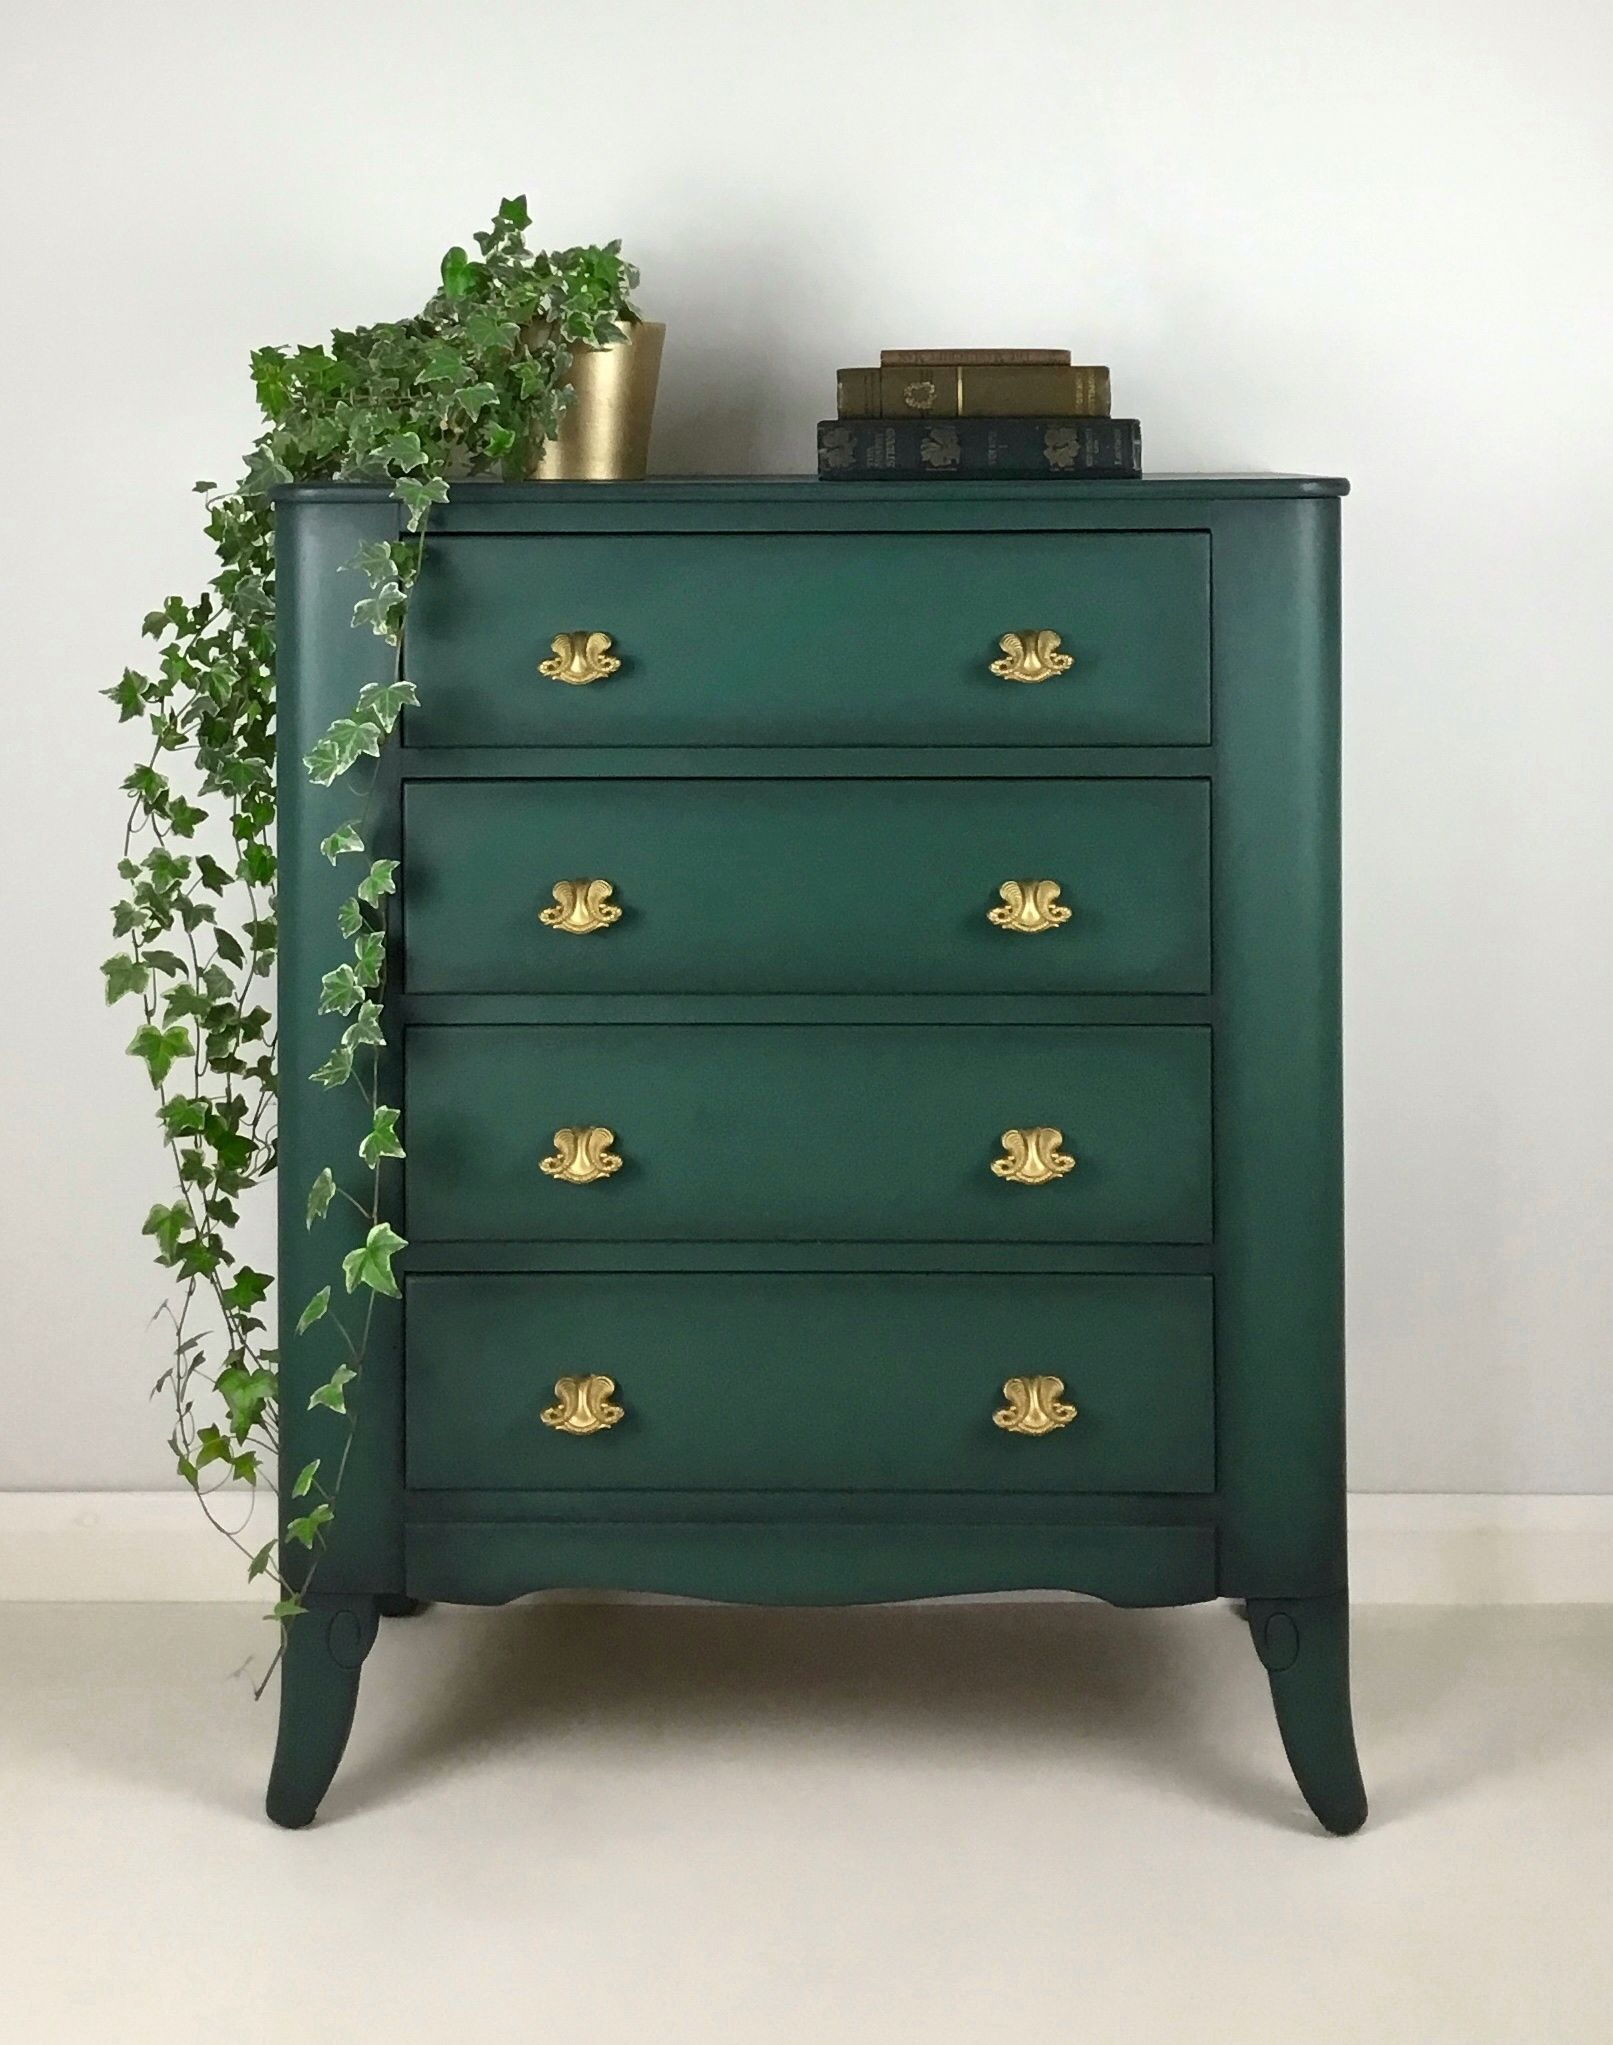 Vintage Painted Lebus Chest Of Drawers Green In 2021 Green Painted Furniture Gold Painted Furniture Revamp Furniture [ 2045 x 1613 Pixel ]